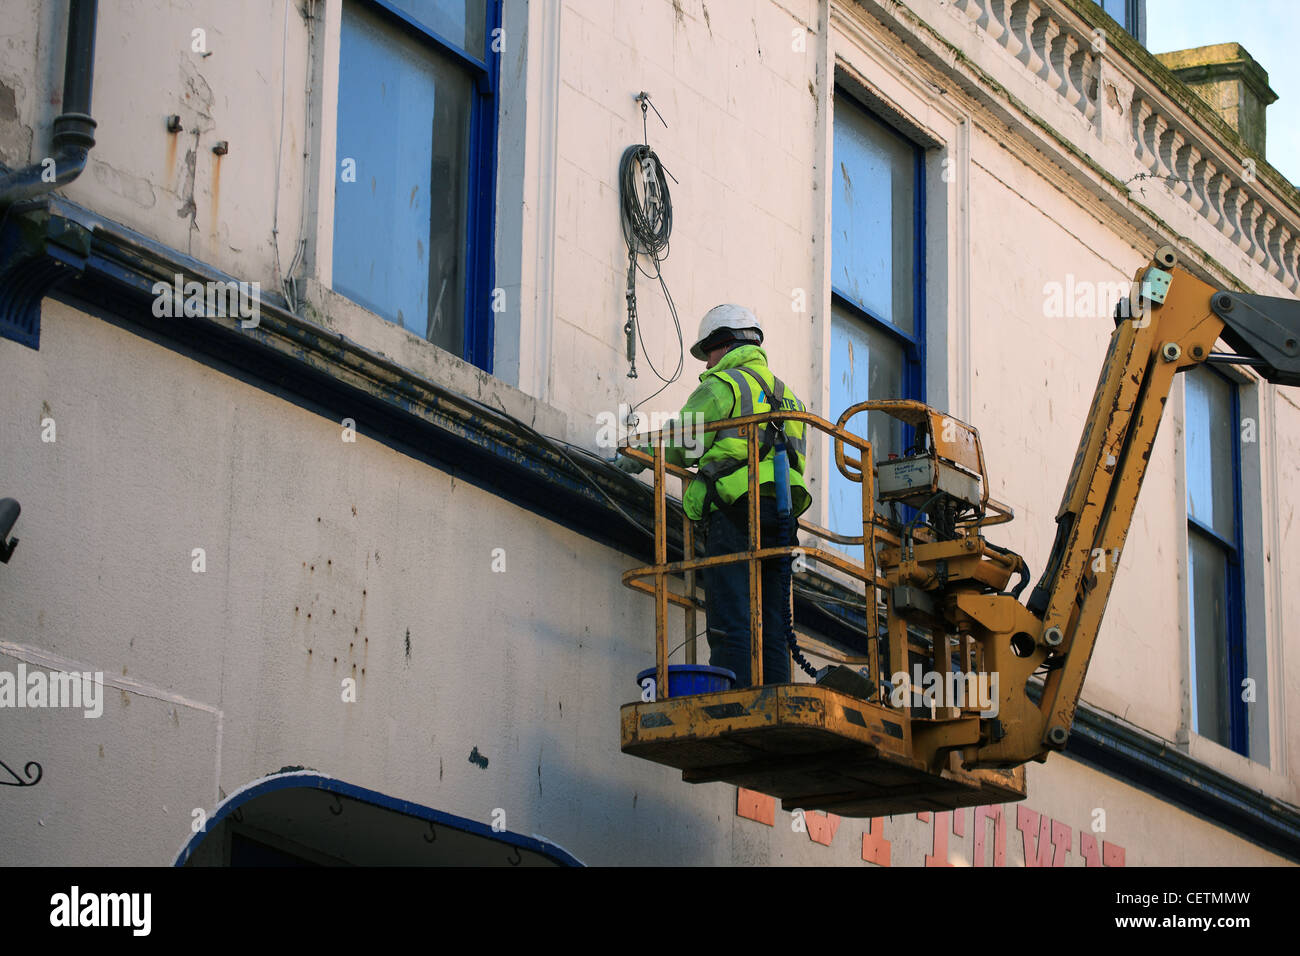 Workman wearing safety harness and hard hat on a crane hoist in the Scottish town of Ayr - Stock Image